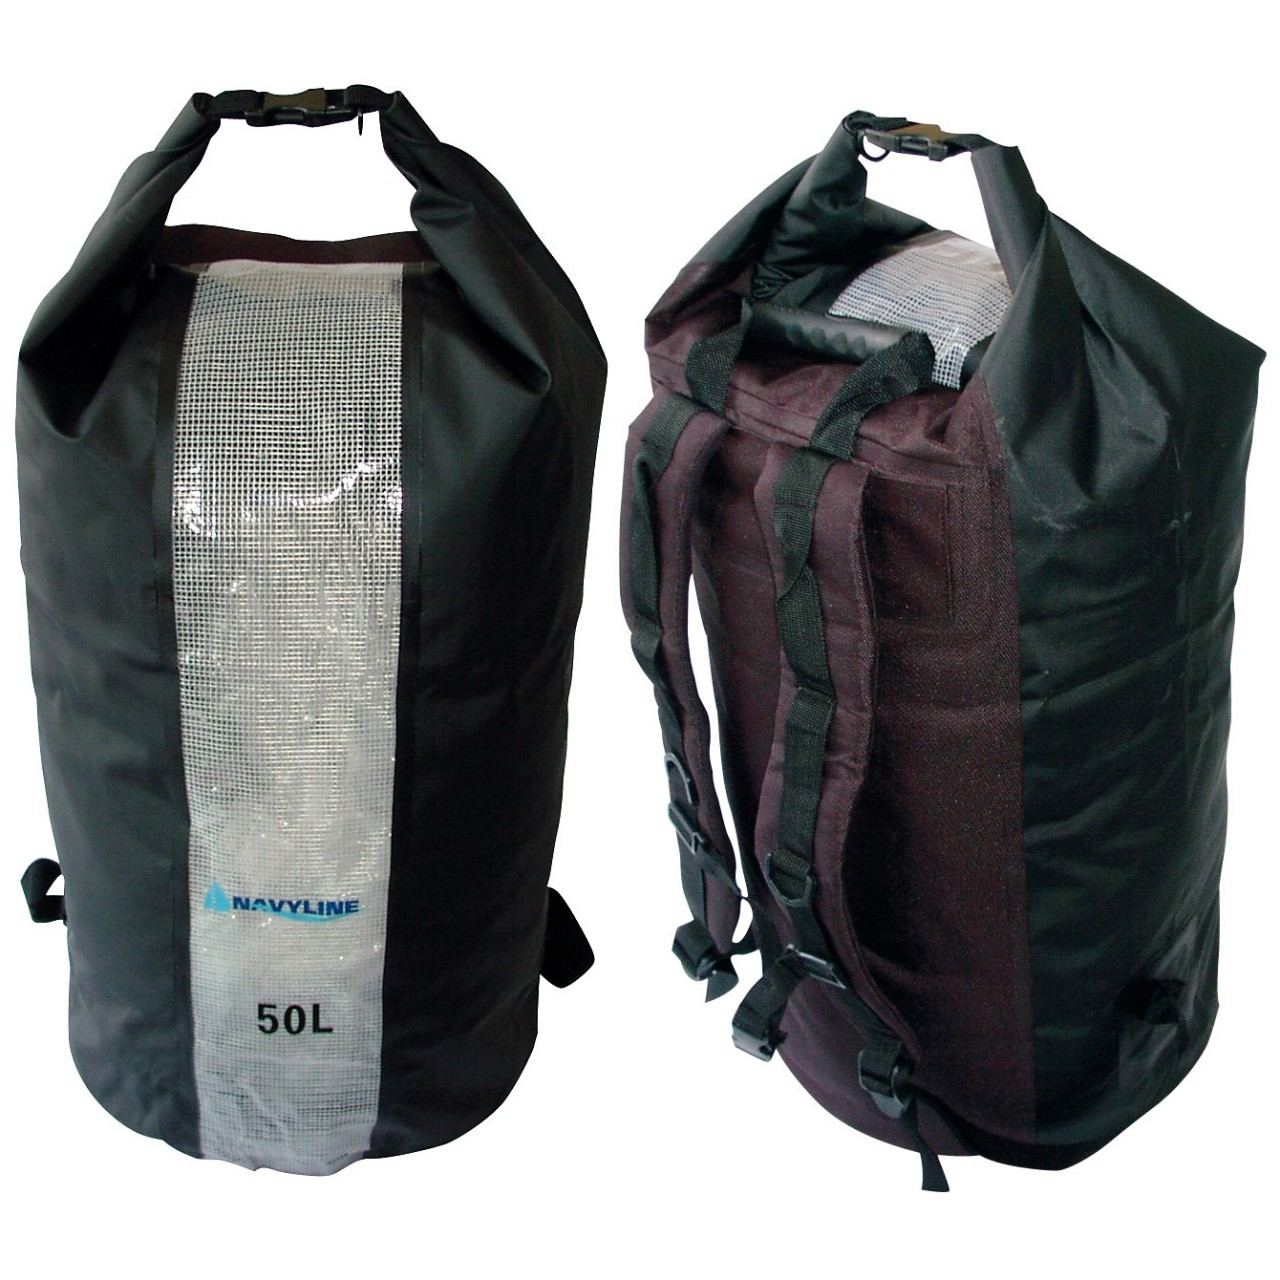 wasserdichter rollbeutel 50 liter mit trageriemen rucksack seesack wasserdicht ebay. Black Bedroom Furniture Sets. Home Design Ideas